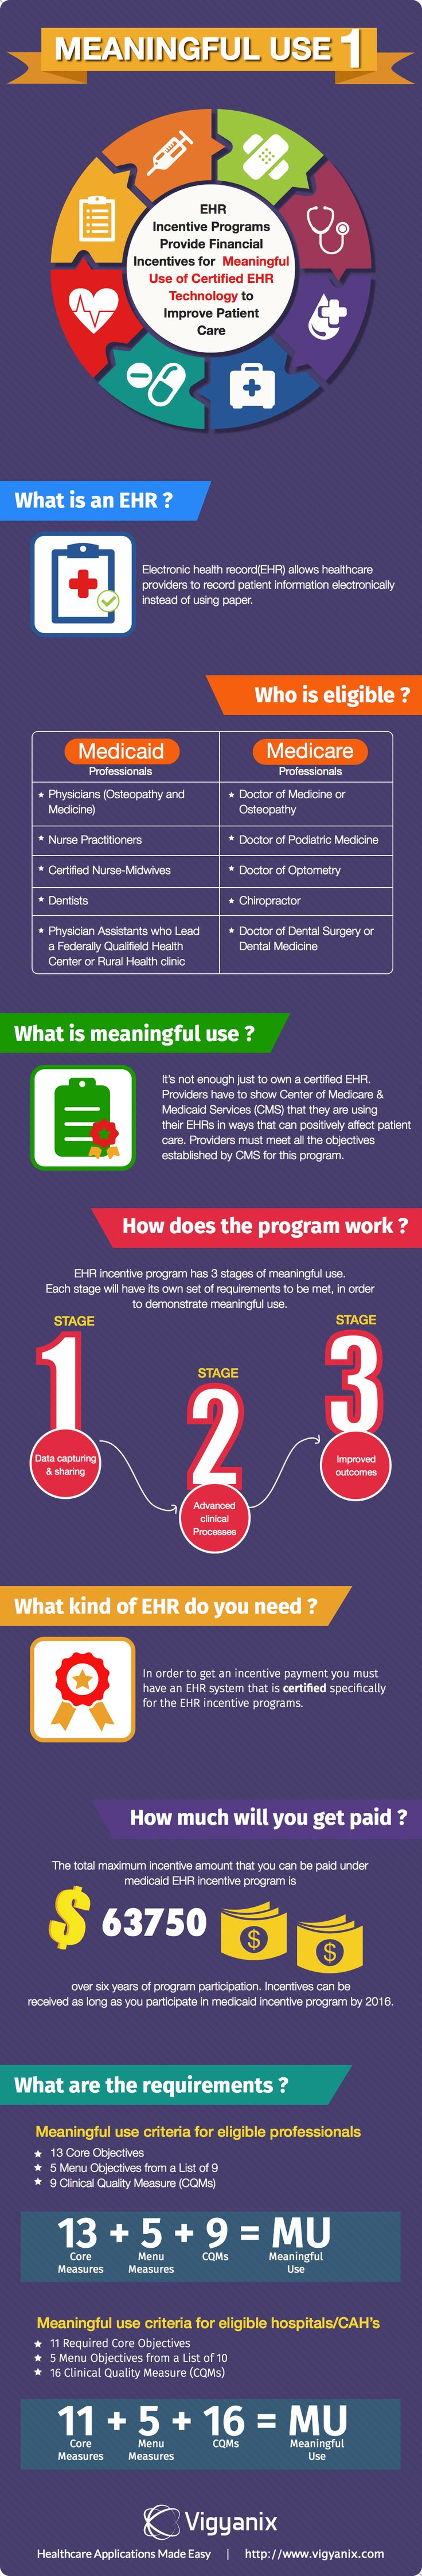 Lets explore in this infographic meaningful use stage 1, its objectives, meaning and the requirements to be met to participate in EHR incentive program.